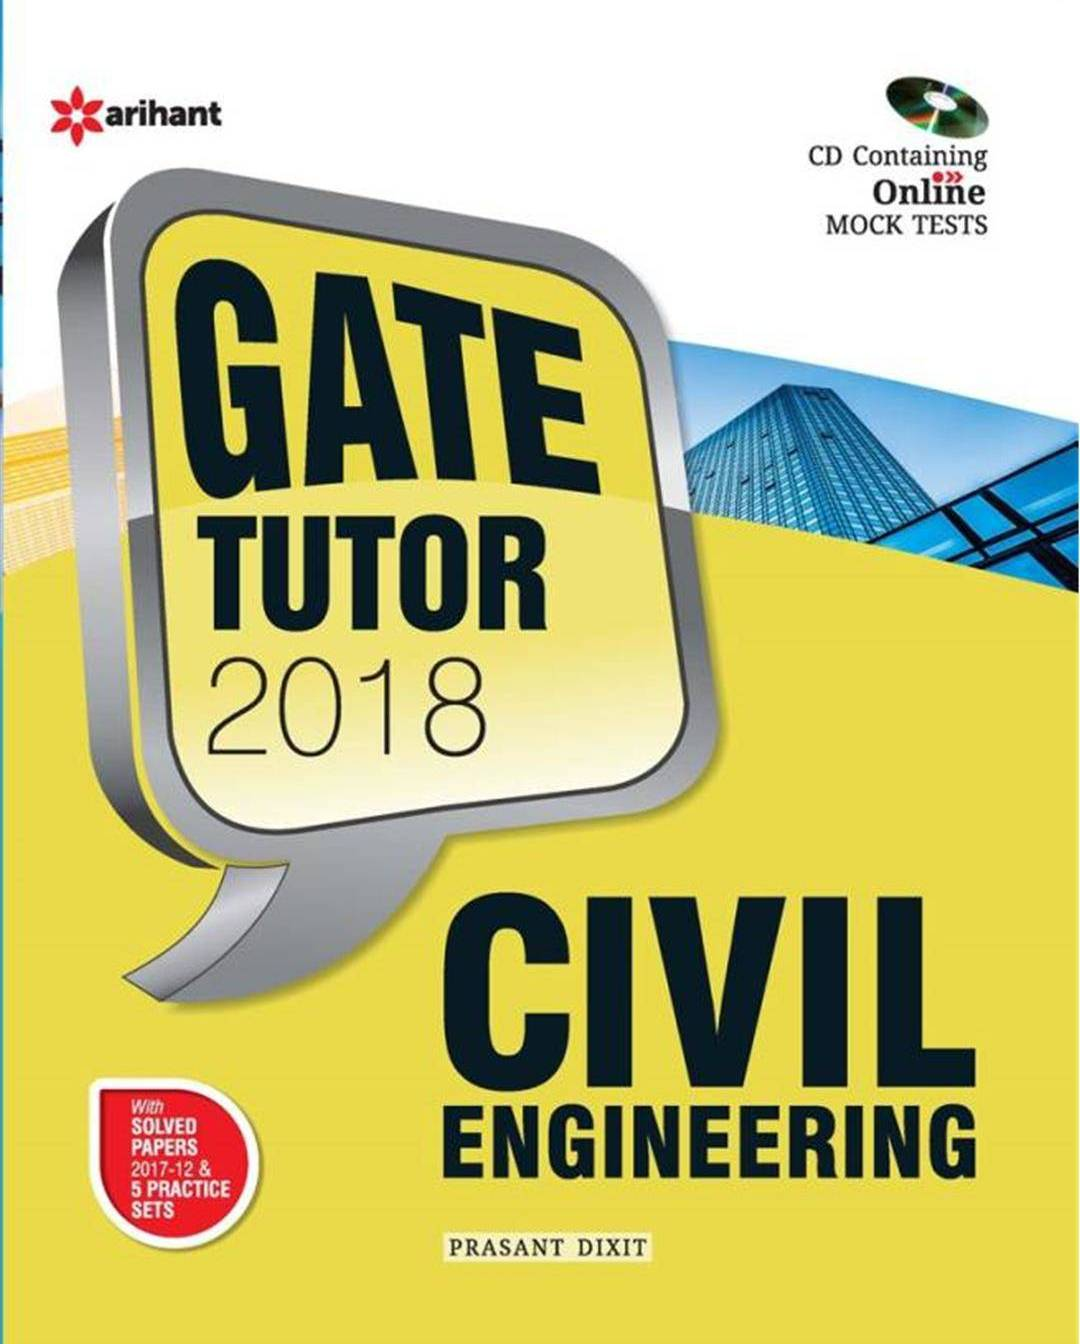 Civil Engineering Gate Tutor 2018 W/Cd : Code G513